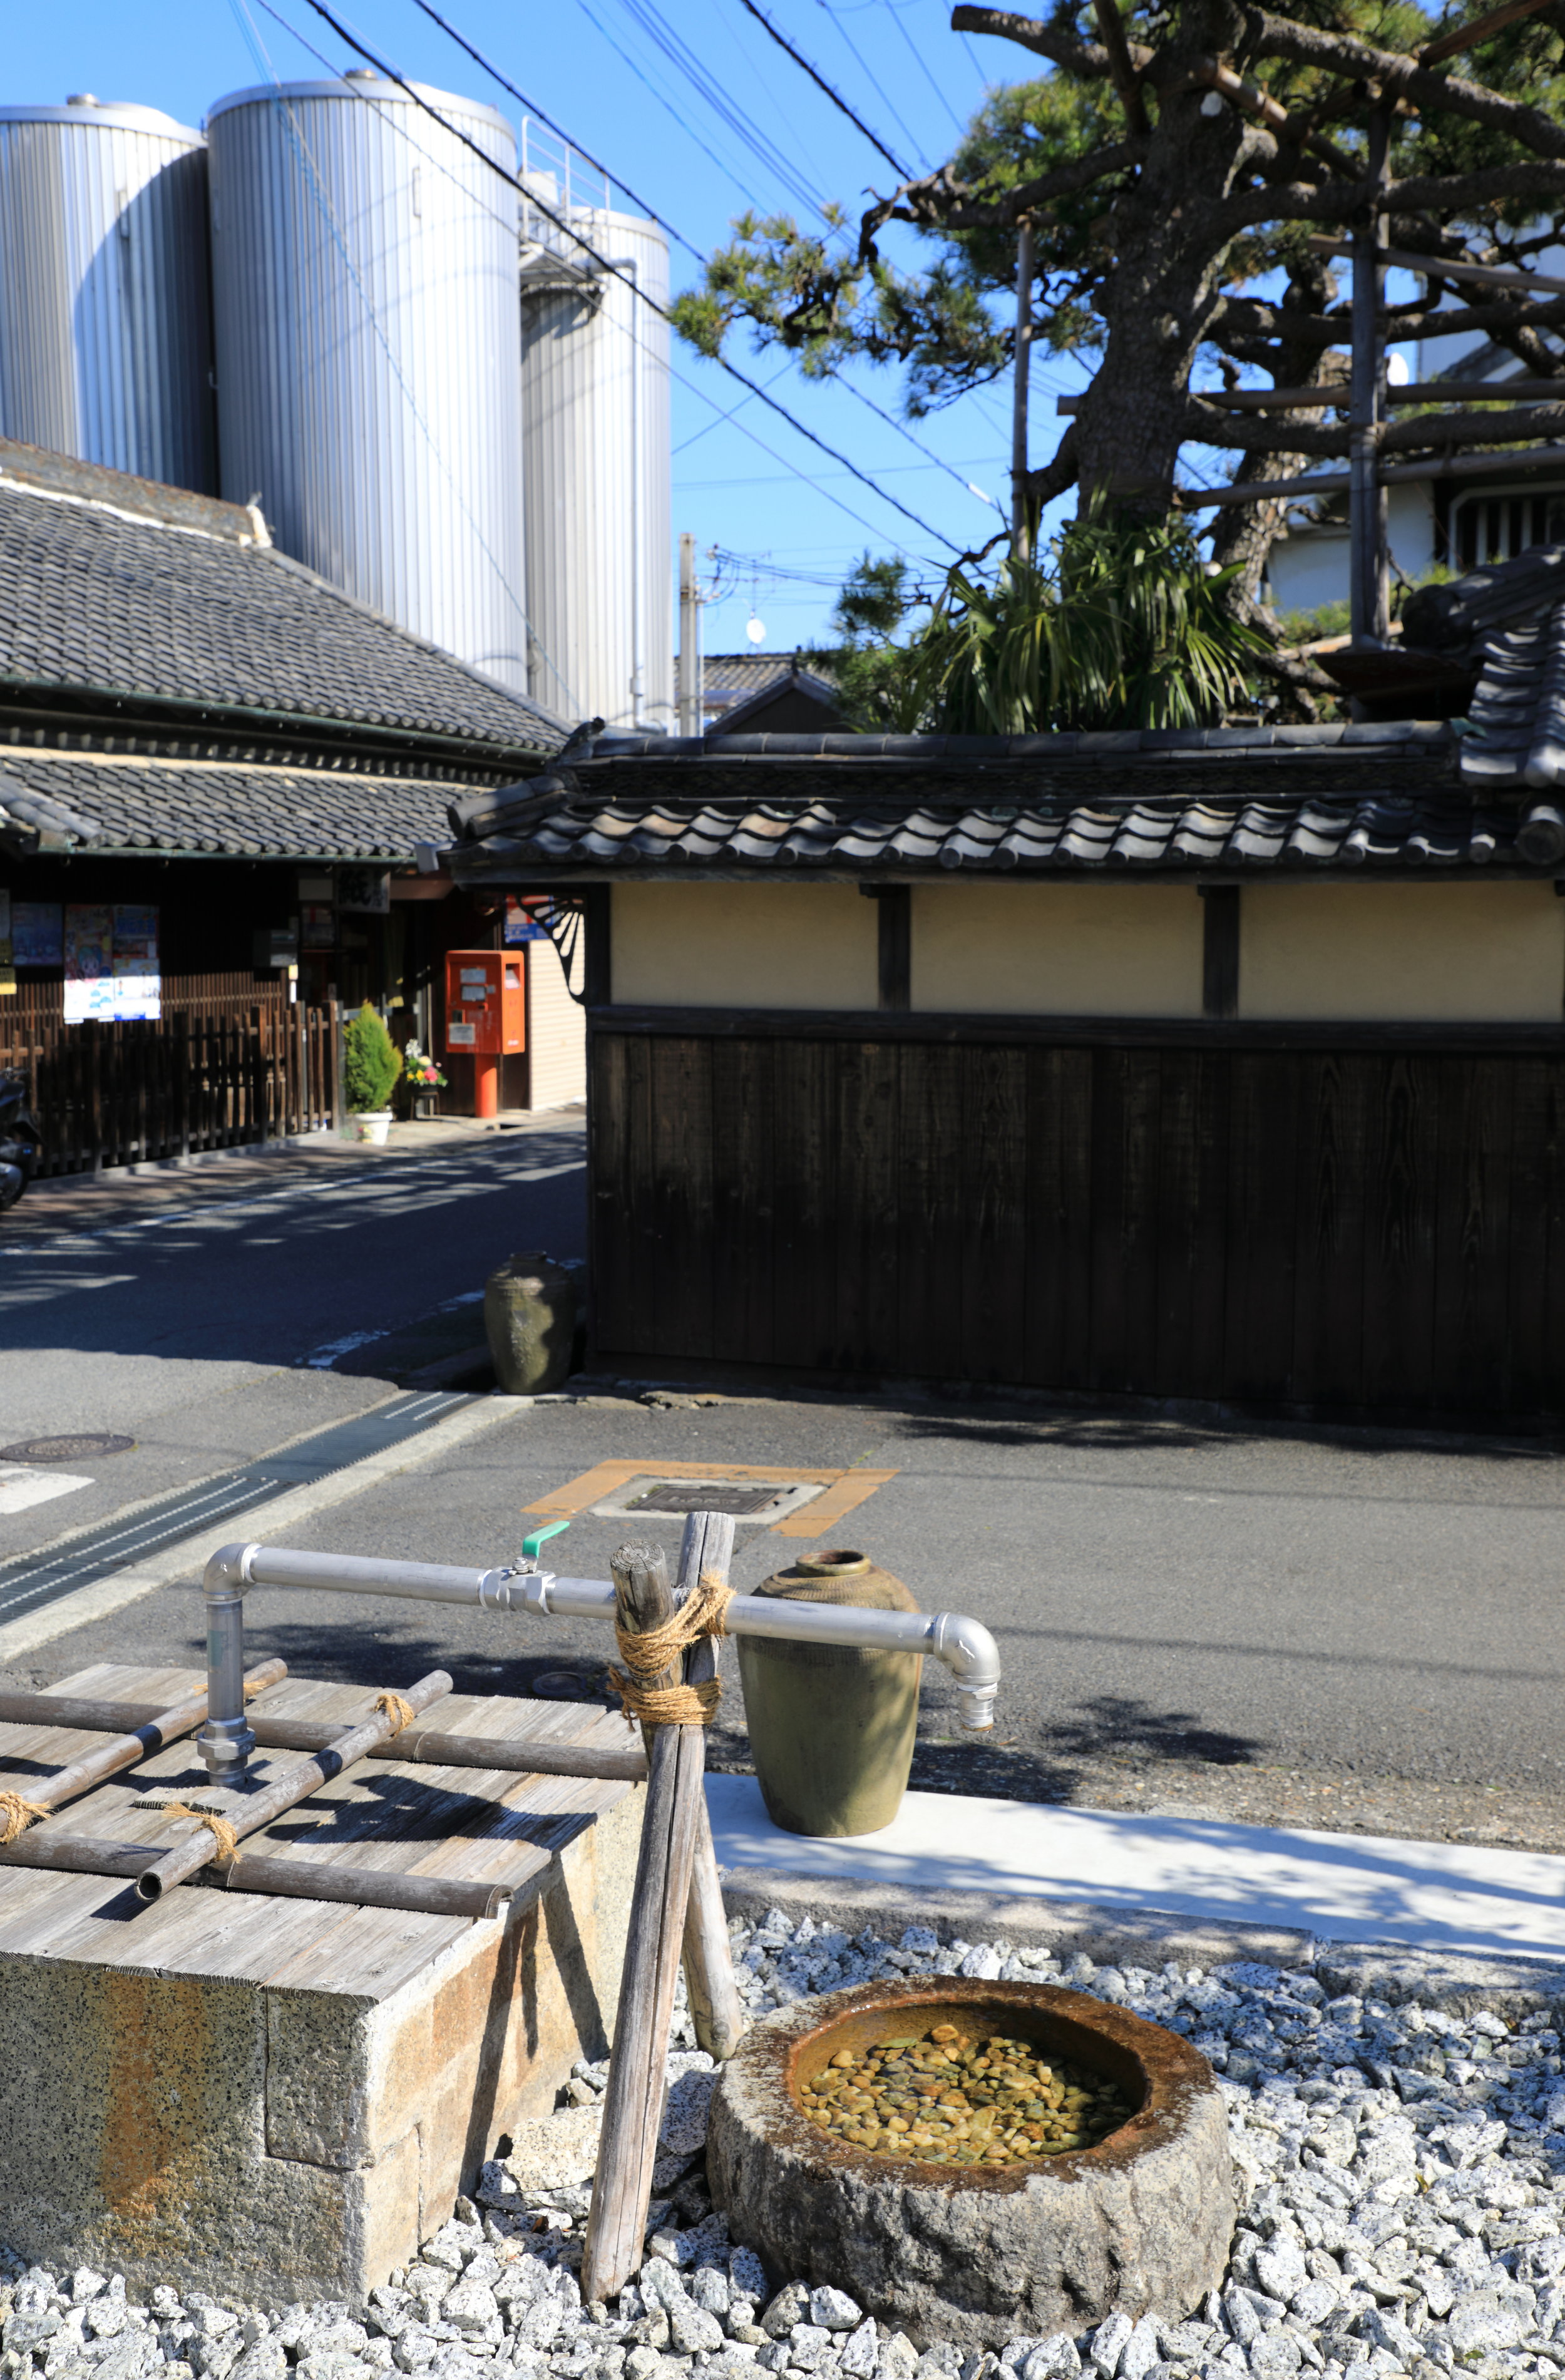 The original 1700s building at Yucho Shuzo sake brewery, well, and steel tanks reflect the key elements behind Kaze no Mori sake's success: Centuries of sake-brewing know-how, the best local ingredients, and modern technology. Yoshi is proud of the pristine and delicious spring water used for  Kaze no Mori  sake and makes it available to anyone in the community who wants to fill a container.